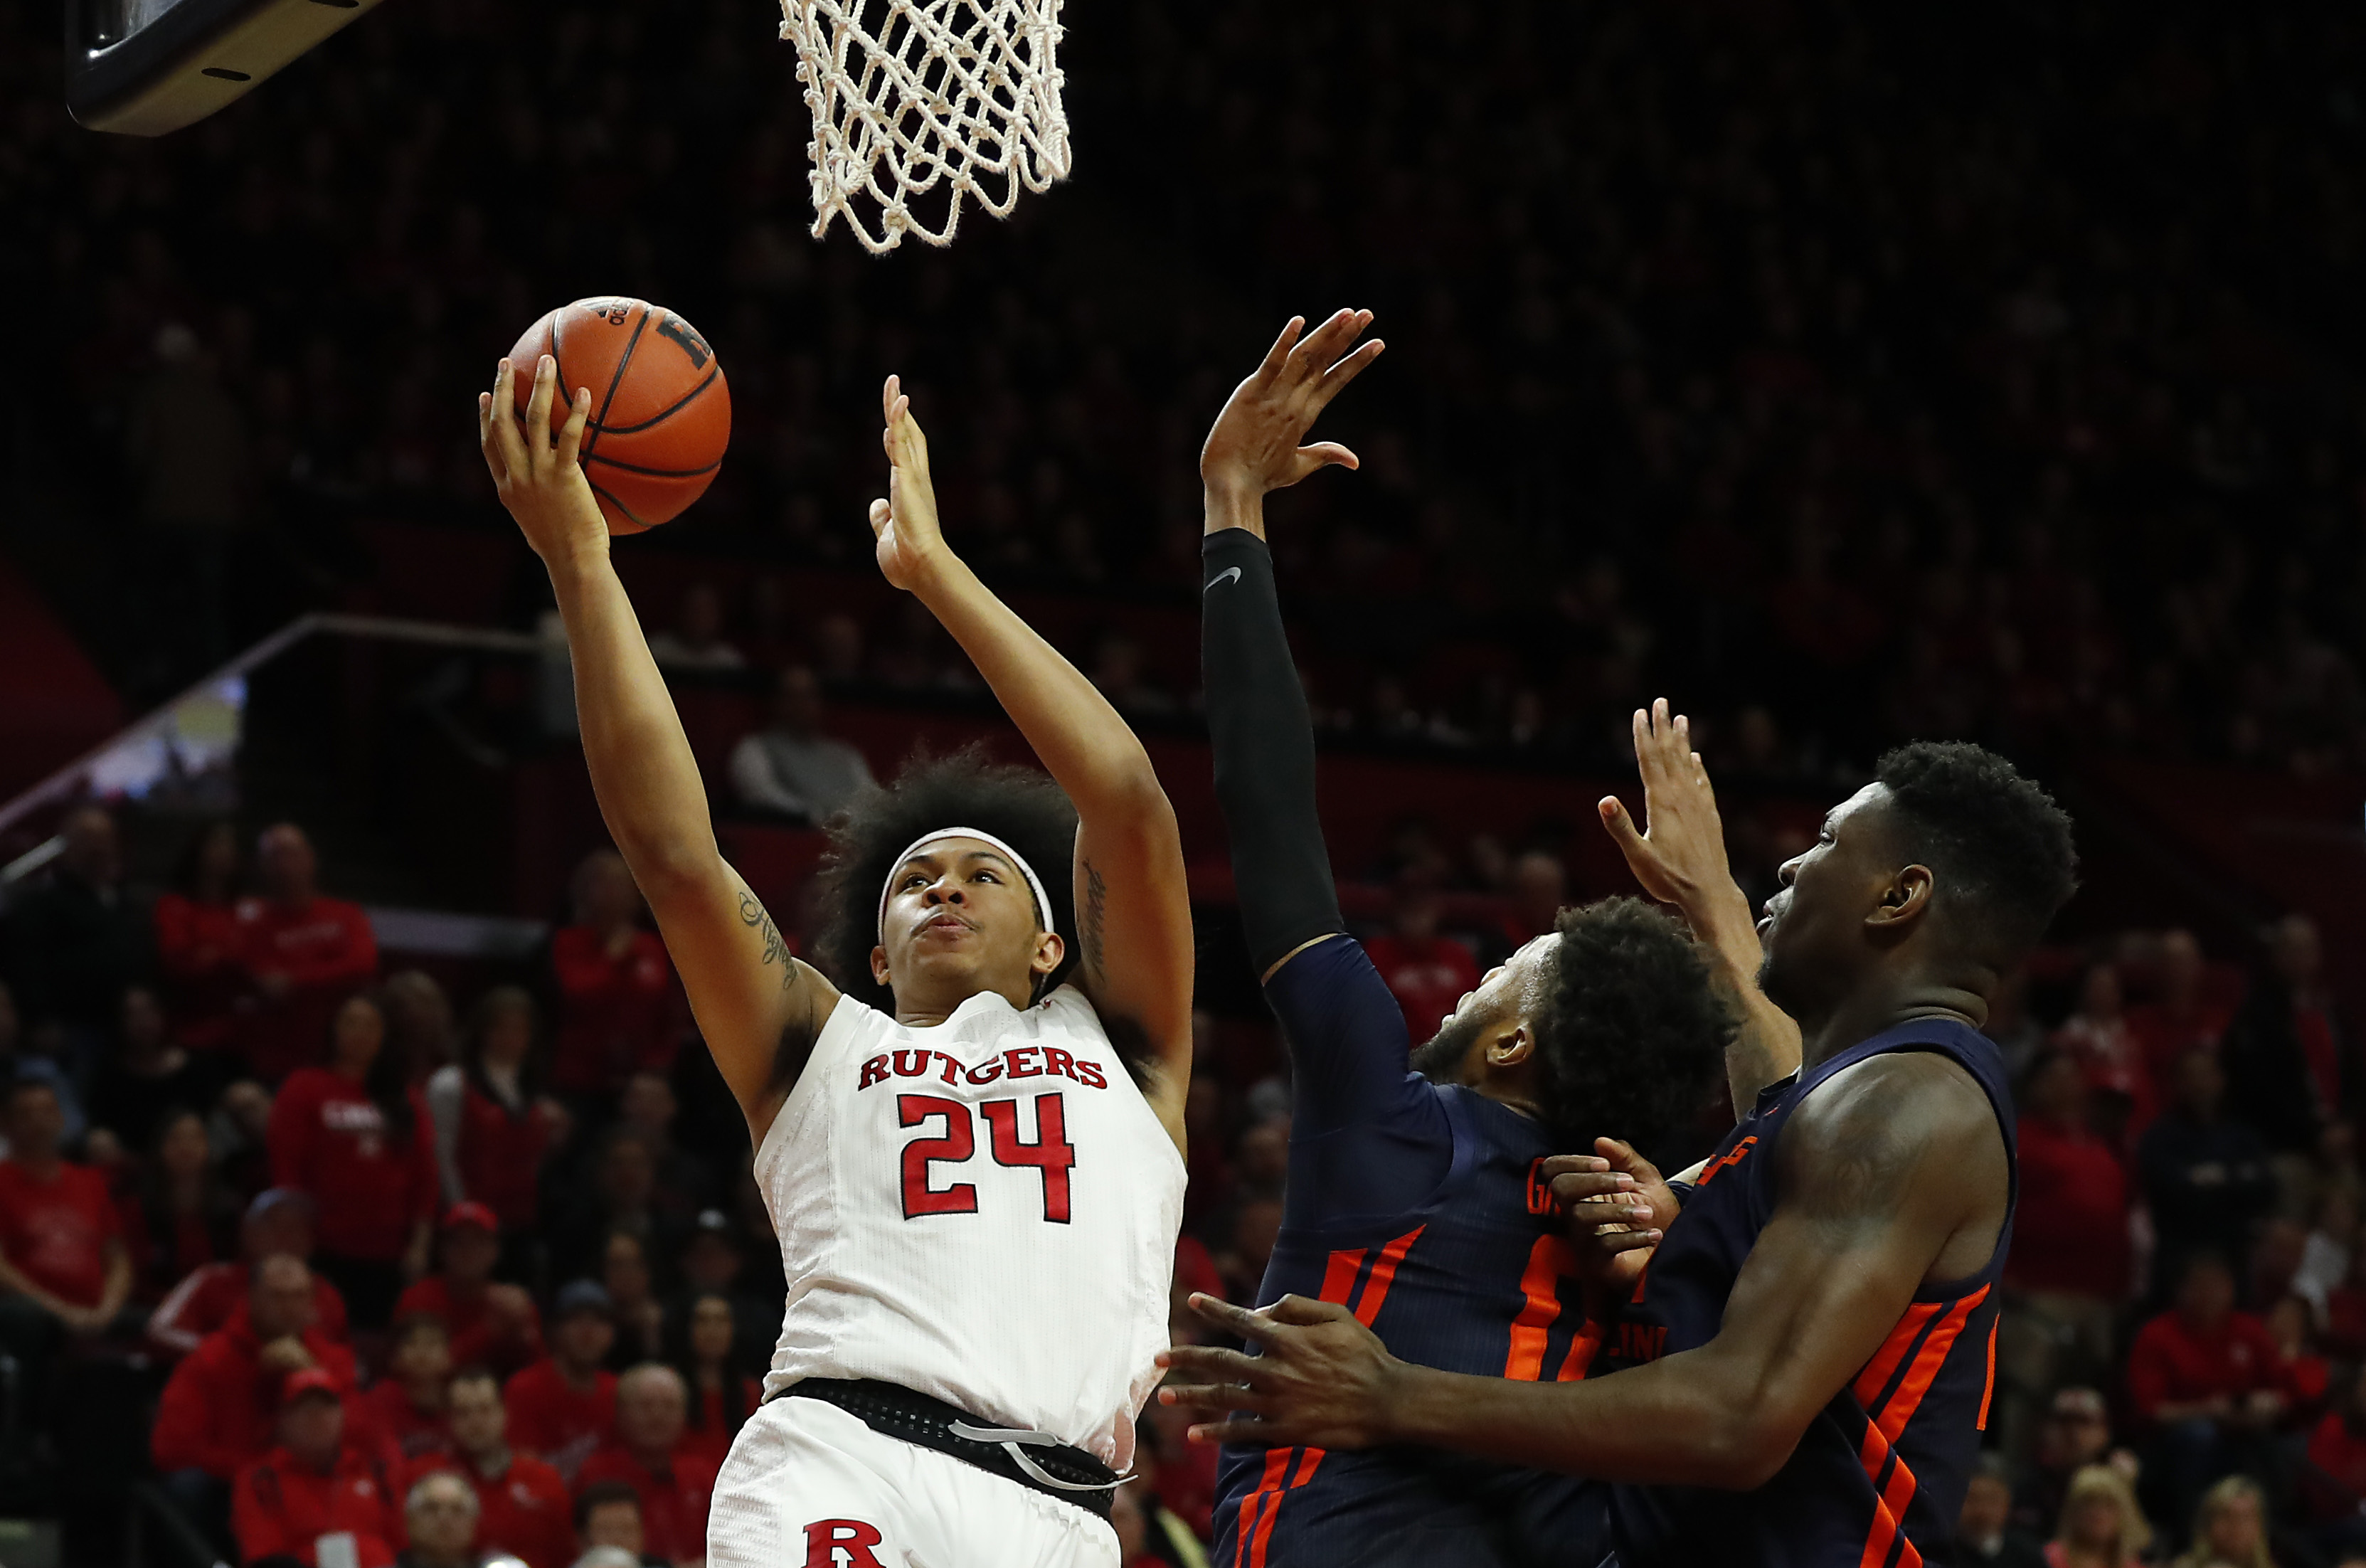 Previewing the Rutgers Scarlet Knights